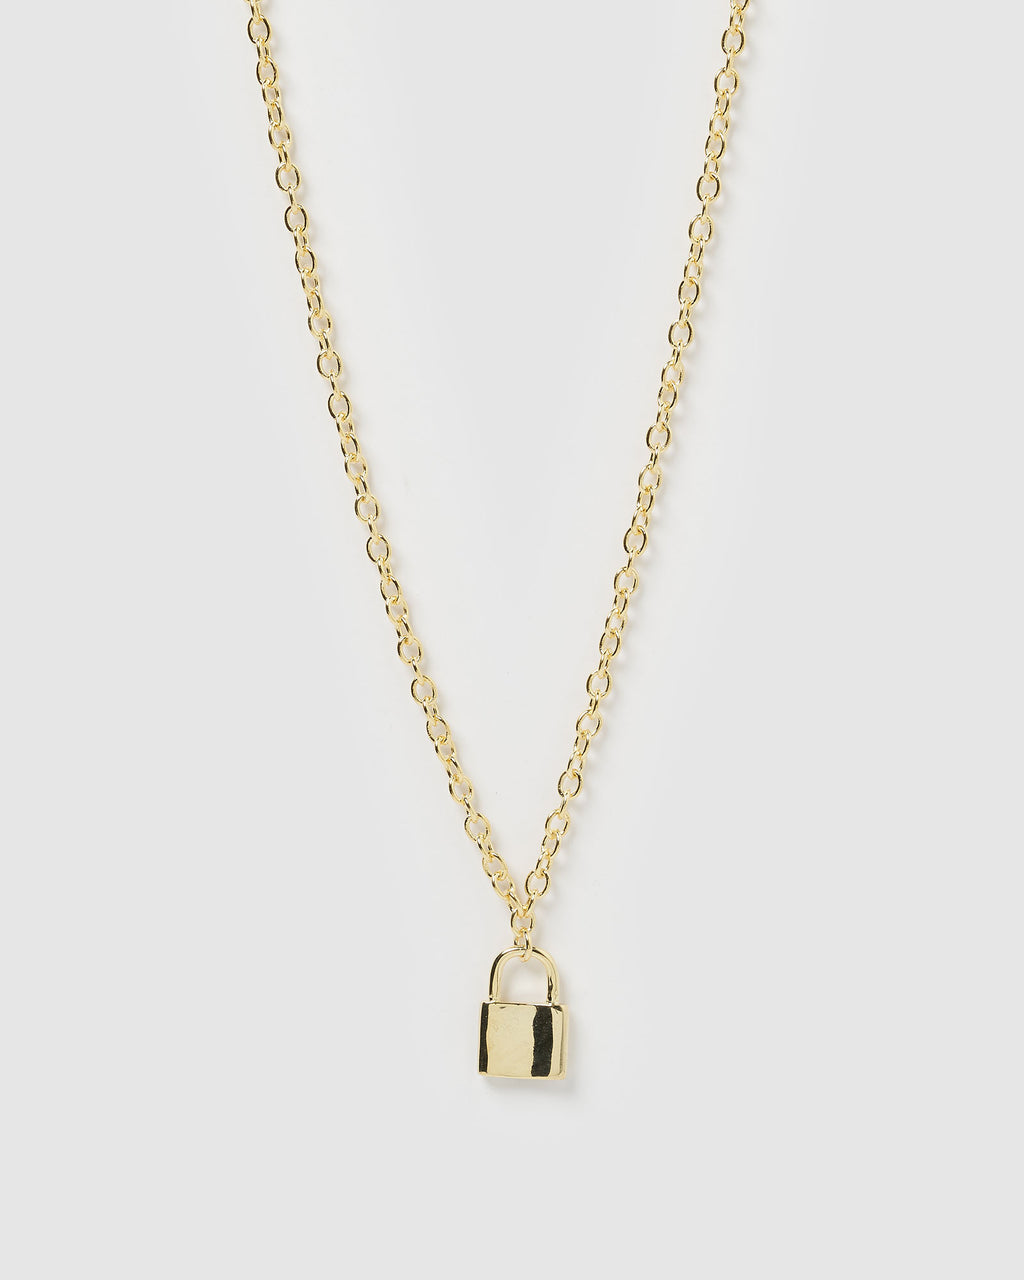 Izoa Rocka Necklace Gold